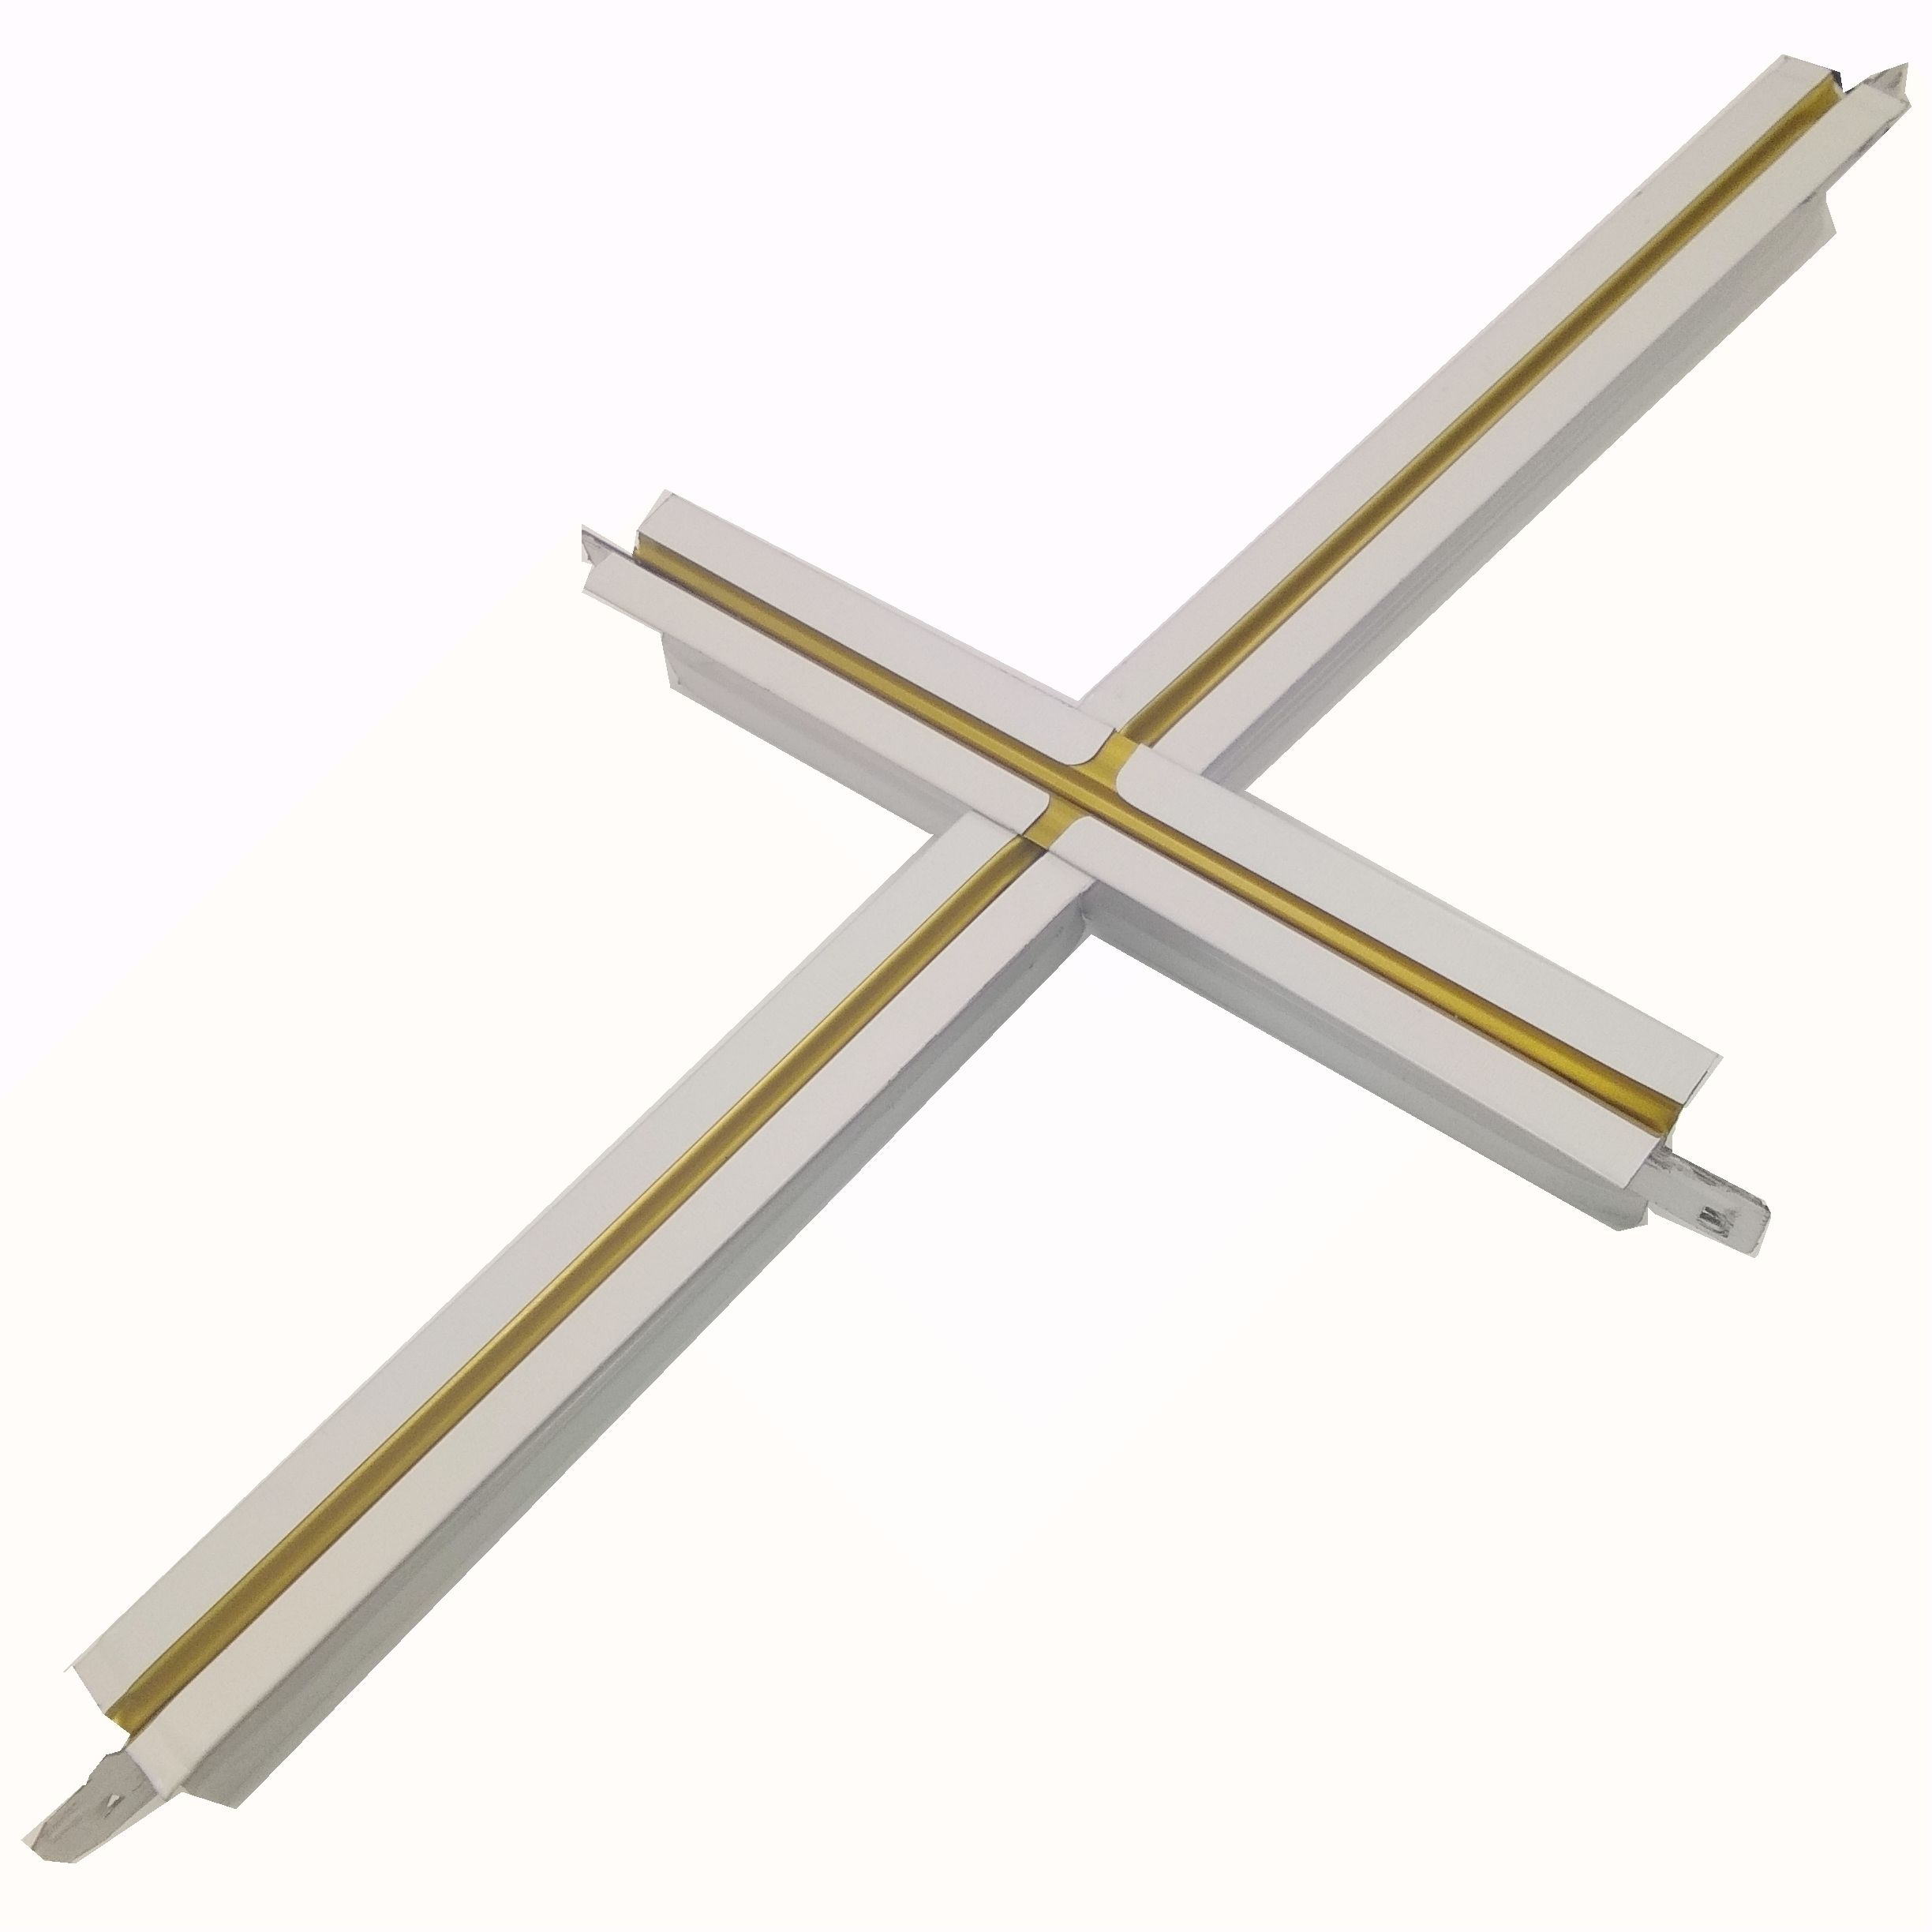 T Grid Suspended Ceiling Grid FUT Ceiling Framing T Bar Galvanized T Bar cross tee main tee